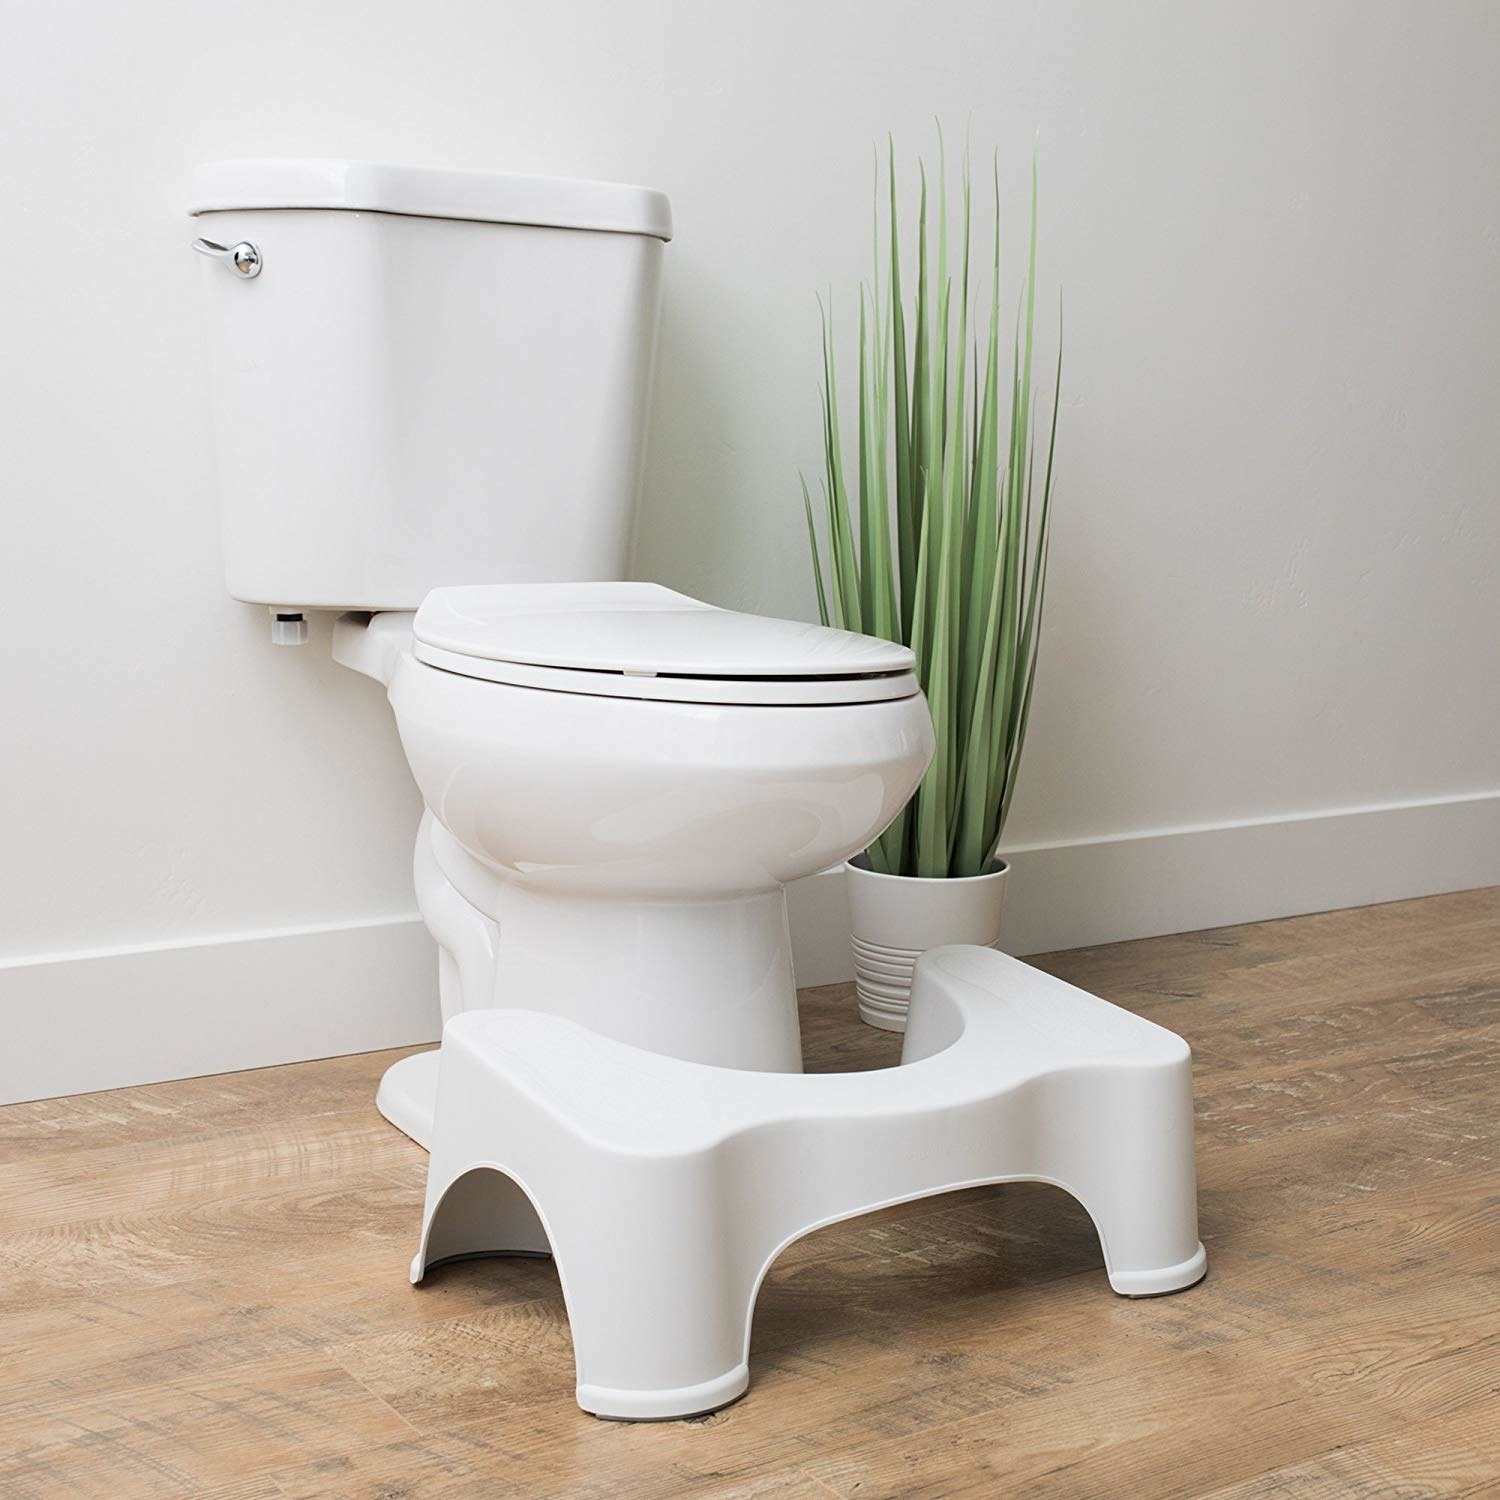 A white stool with a rounded edge to tuck into the bottom of the toilet